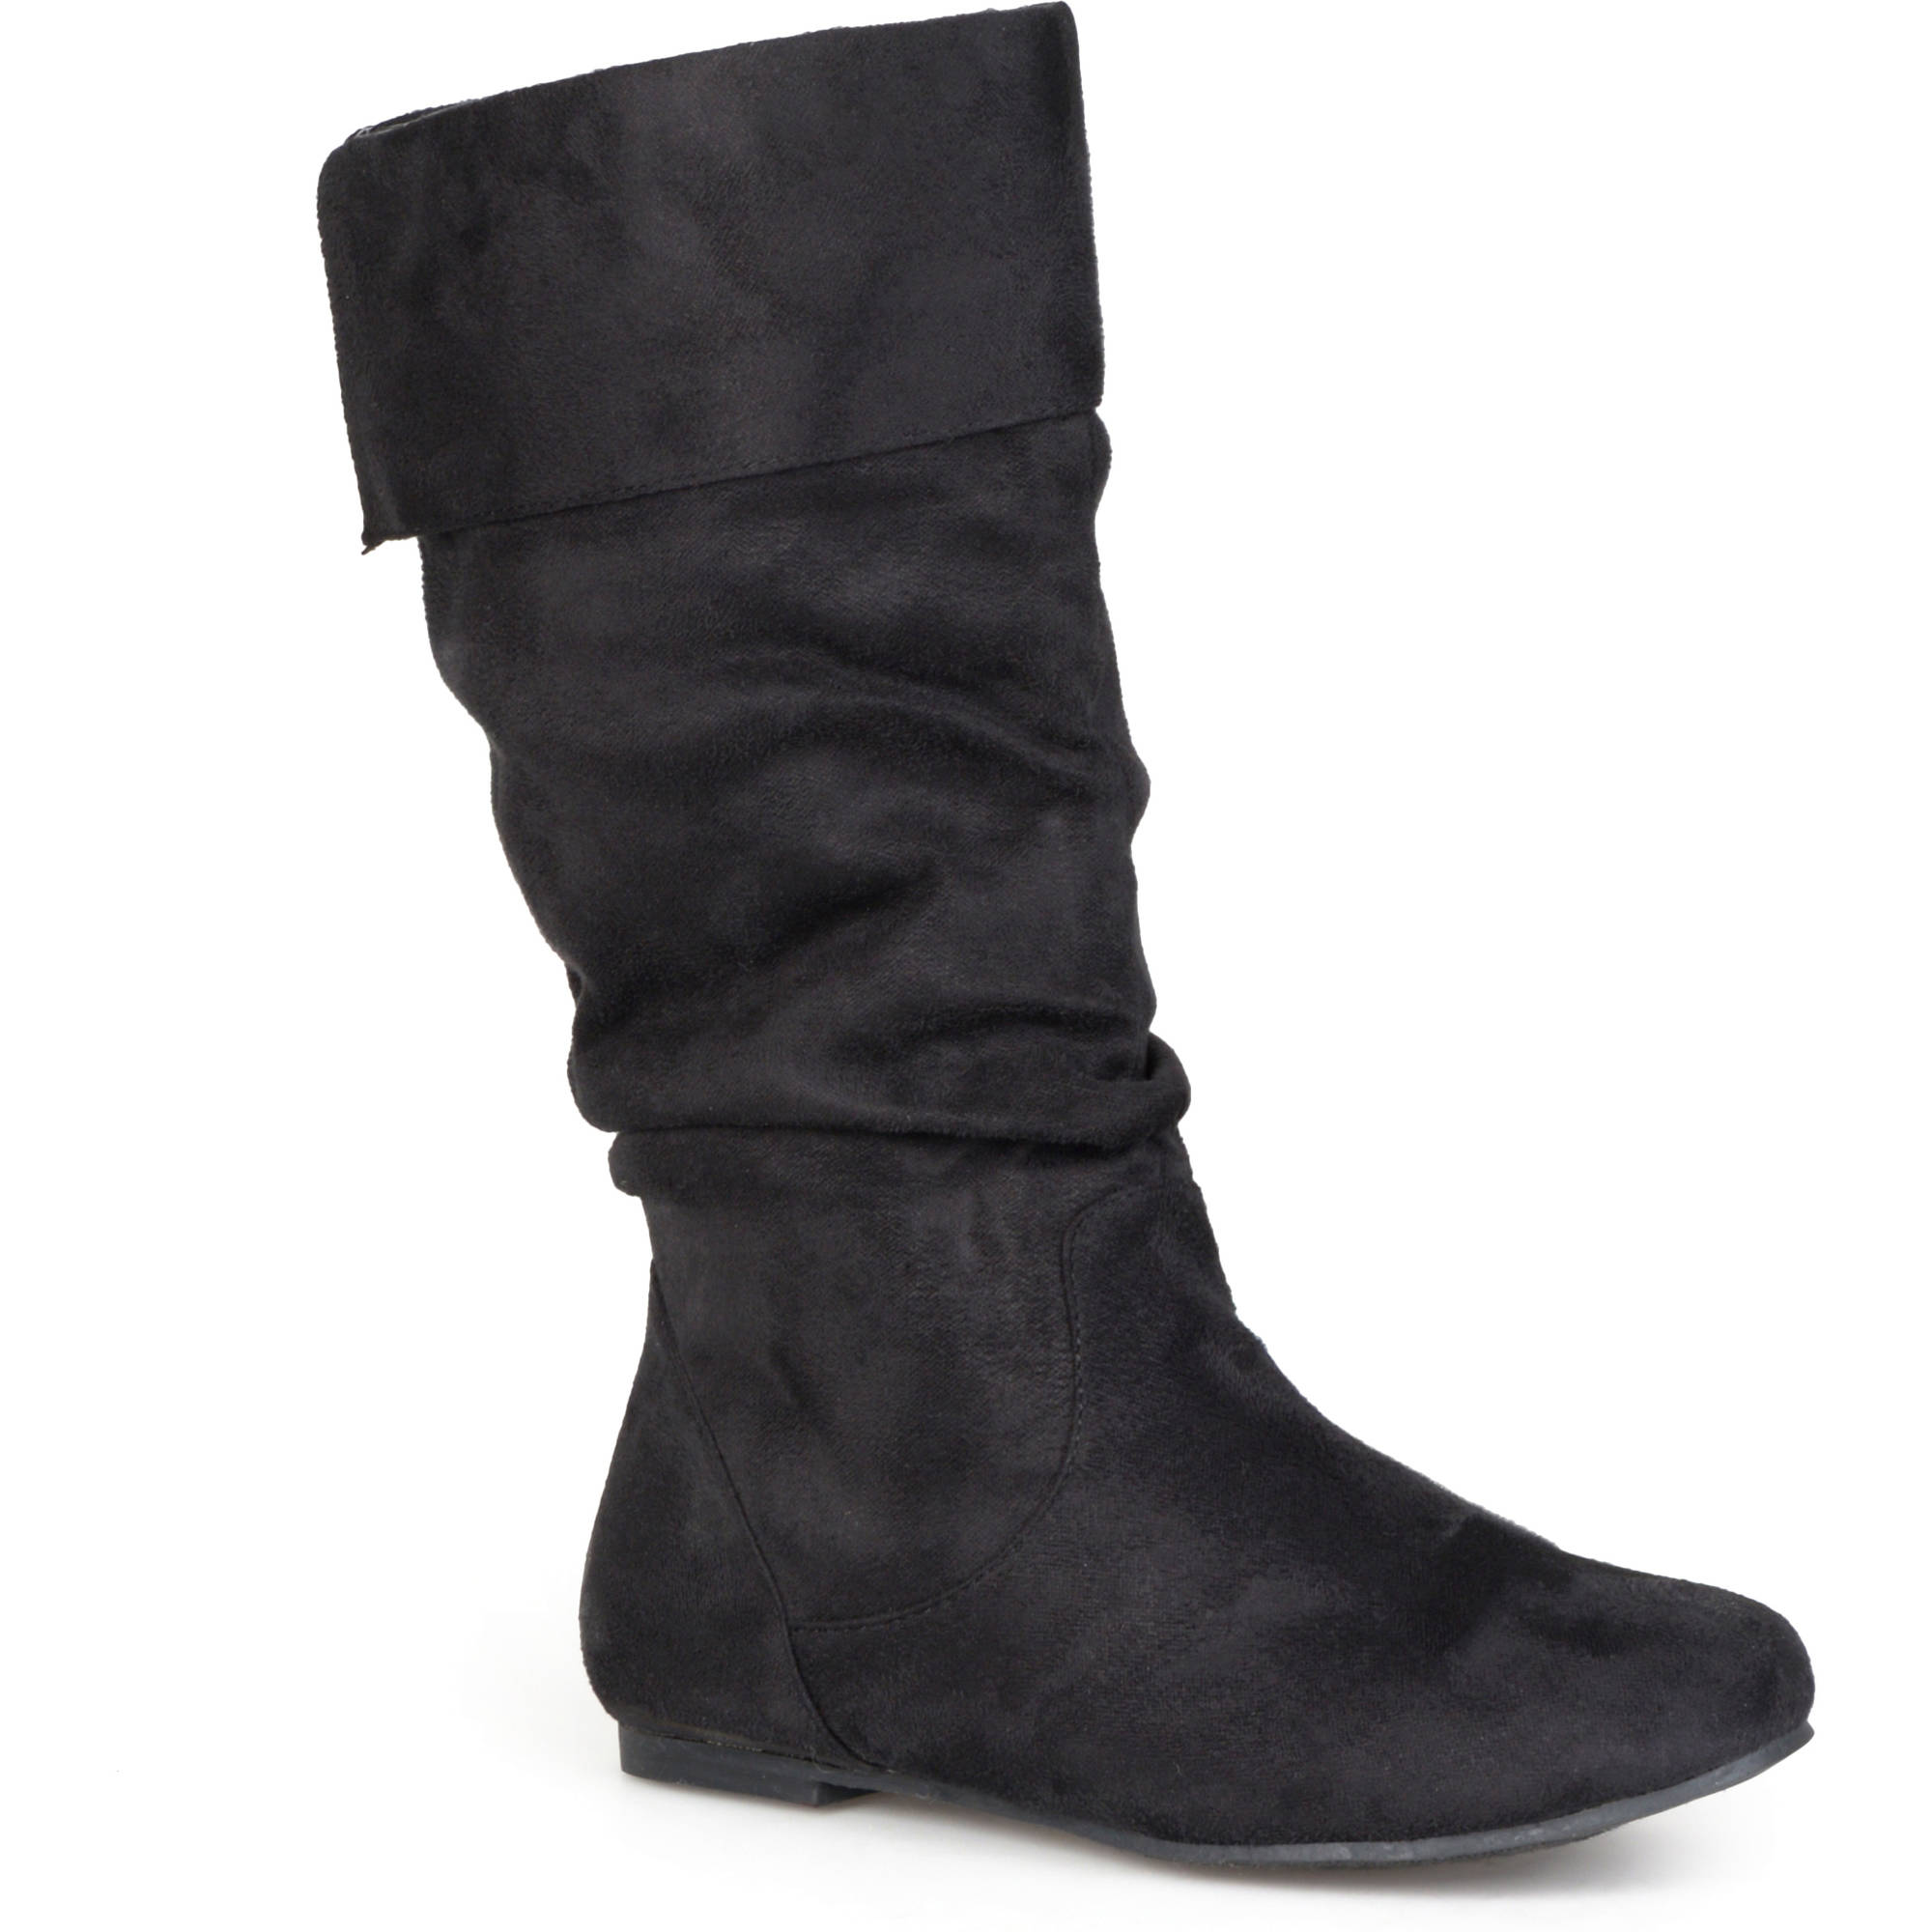 brinley co womens wide calf microsuede slouch boots